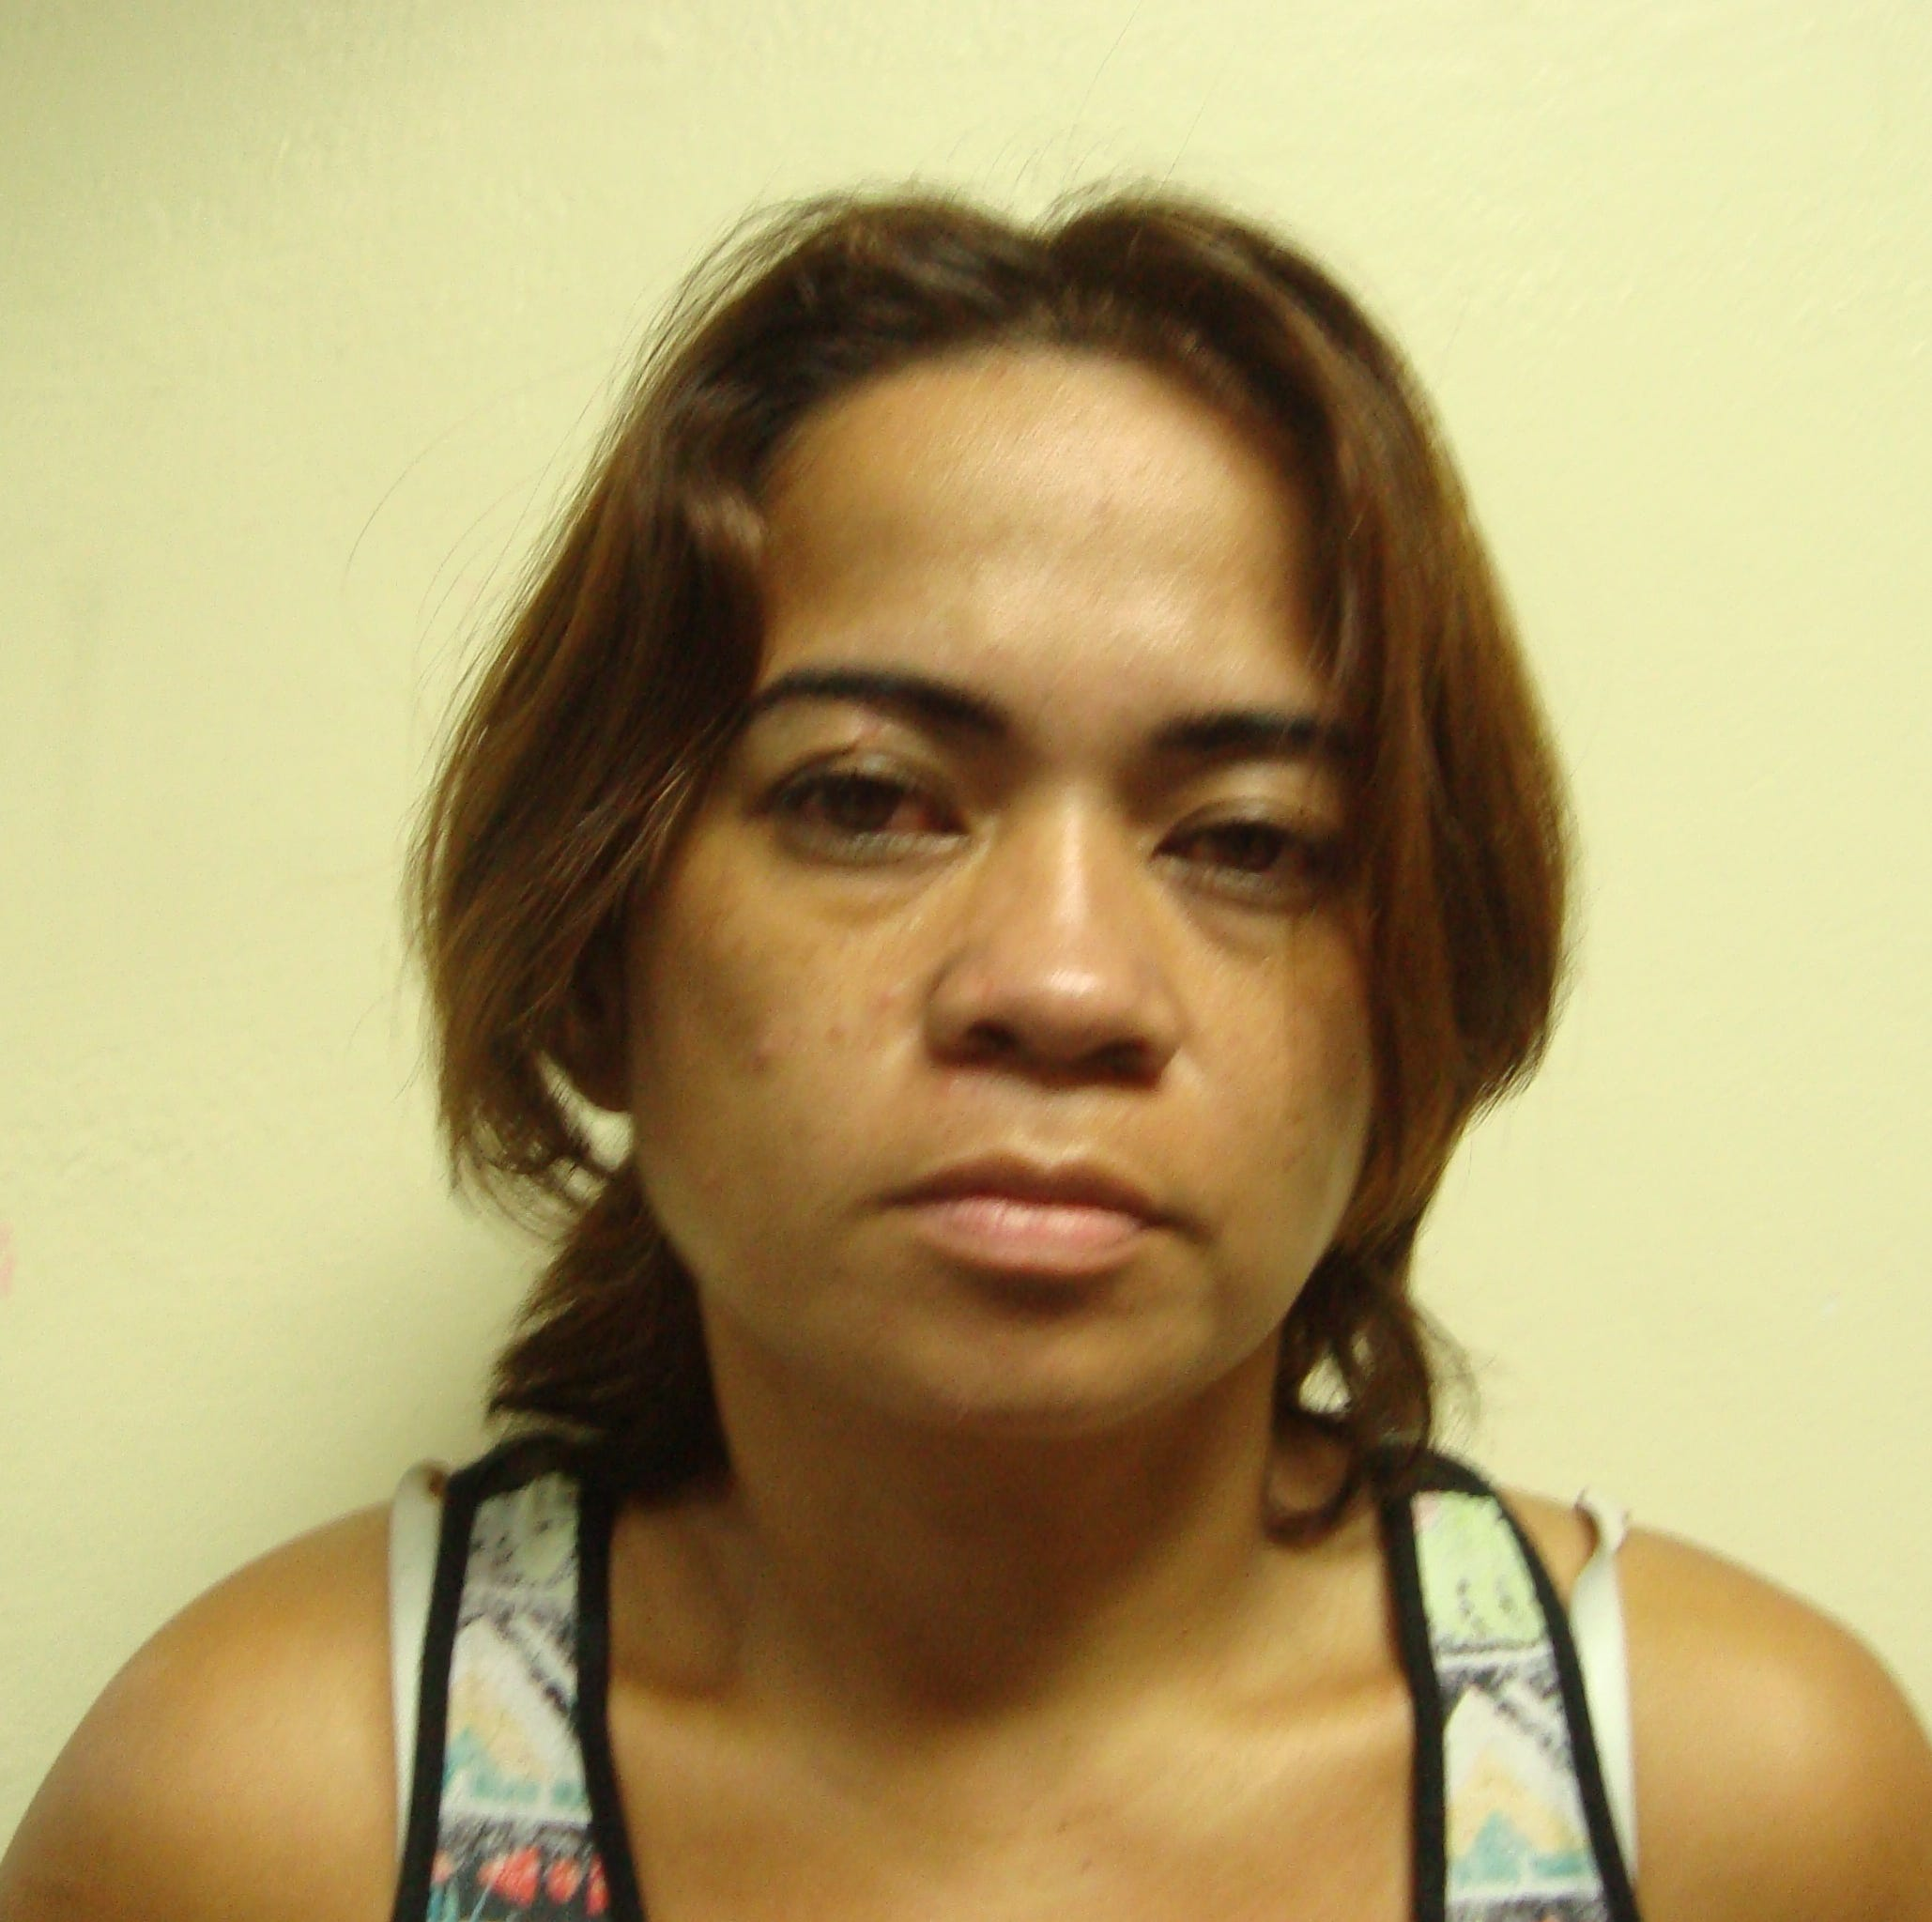 Estephany Benavente, Angelica Taisacan accused of trying to cash fake checks at Pay-Less locations